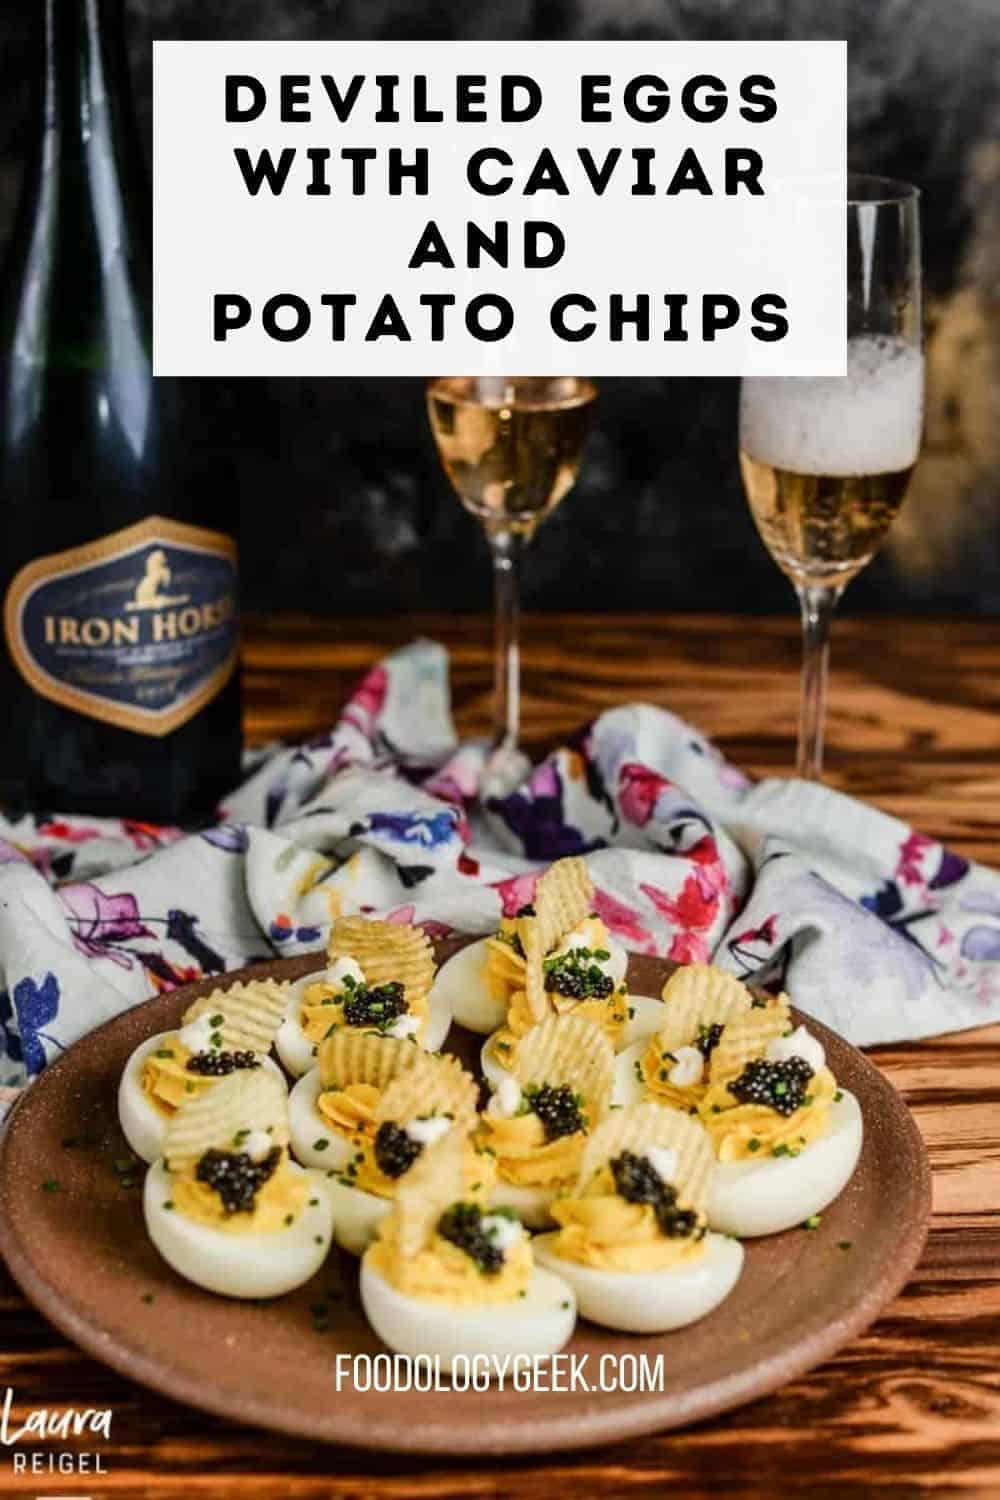 🥂Deviled eggs with caviar and potato chips. If you want a new spin on classic deviled eggs, this post is for you. 🍾 These are something to celebrate!